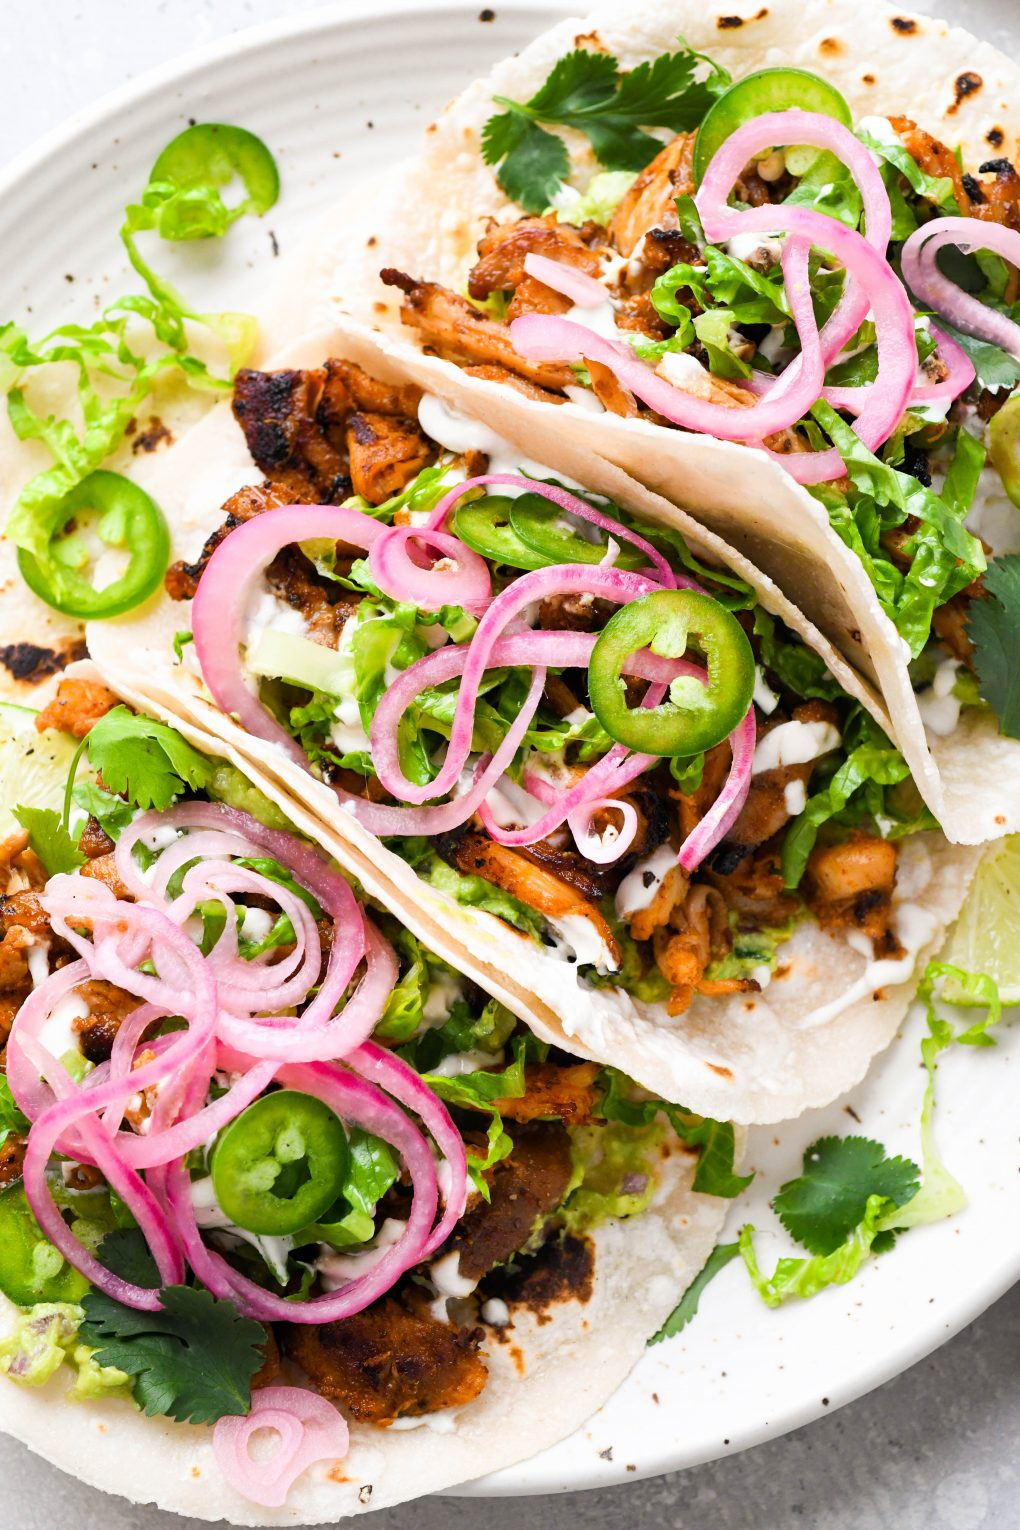 Overhead shot of three tacos lined up on a white speckled plate. They are shredded chicken tacos filled with shredded romaine, sliced jalapeno, guacamole, cilantro, and pickled red onions.